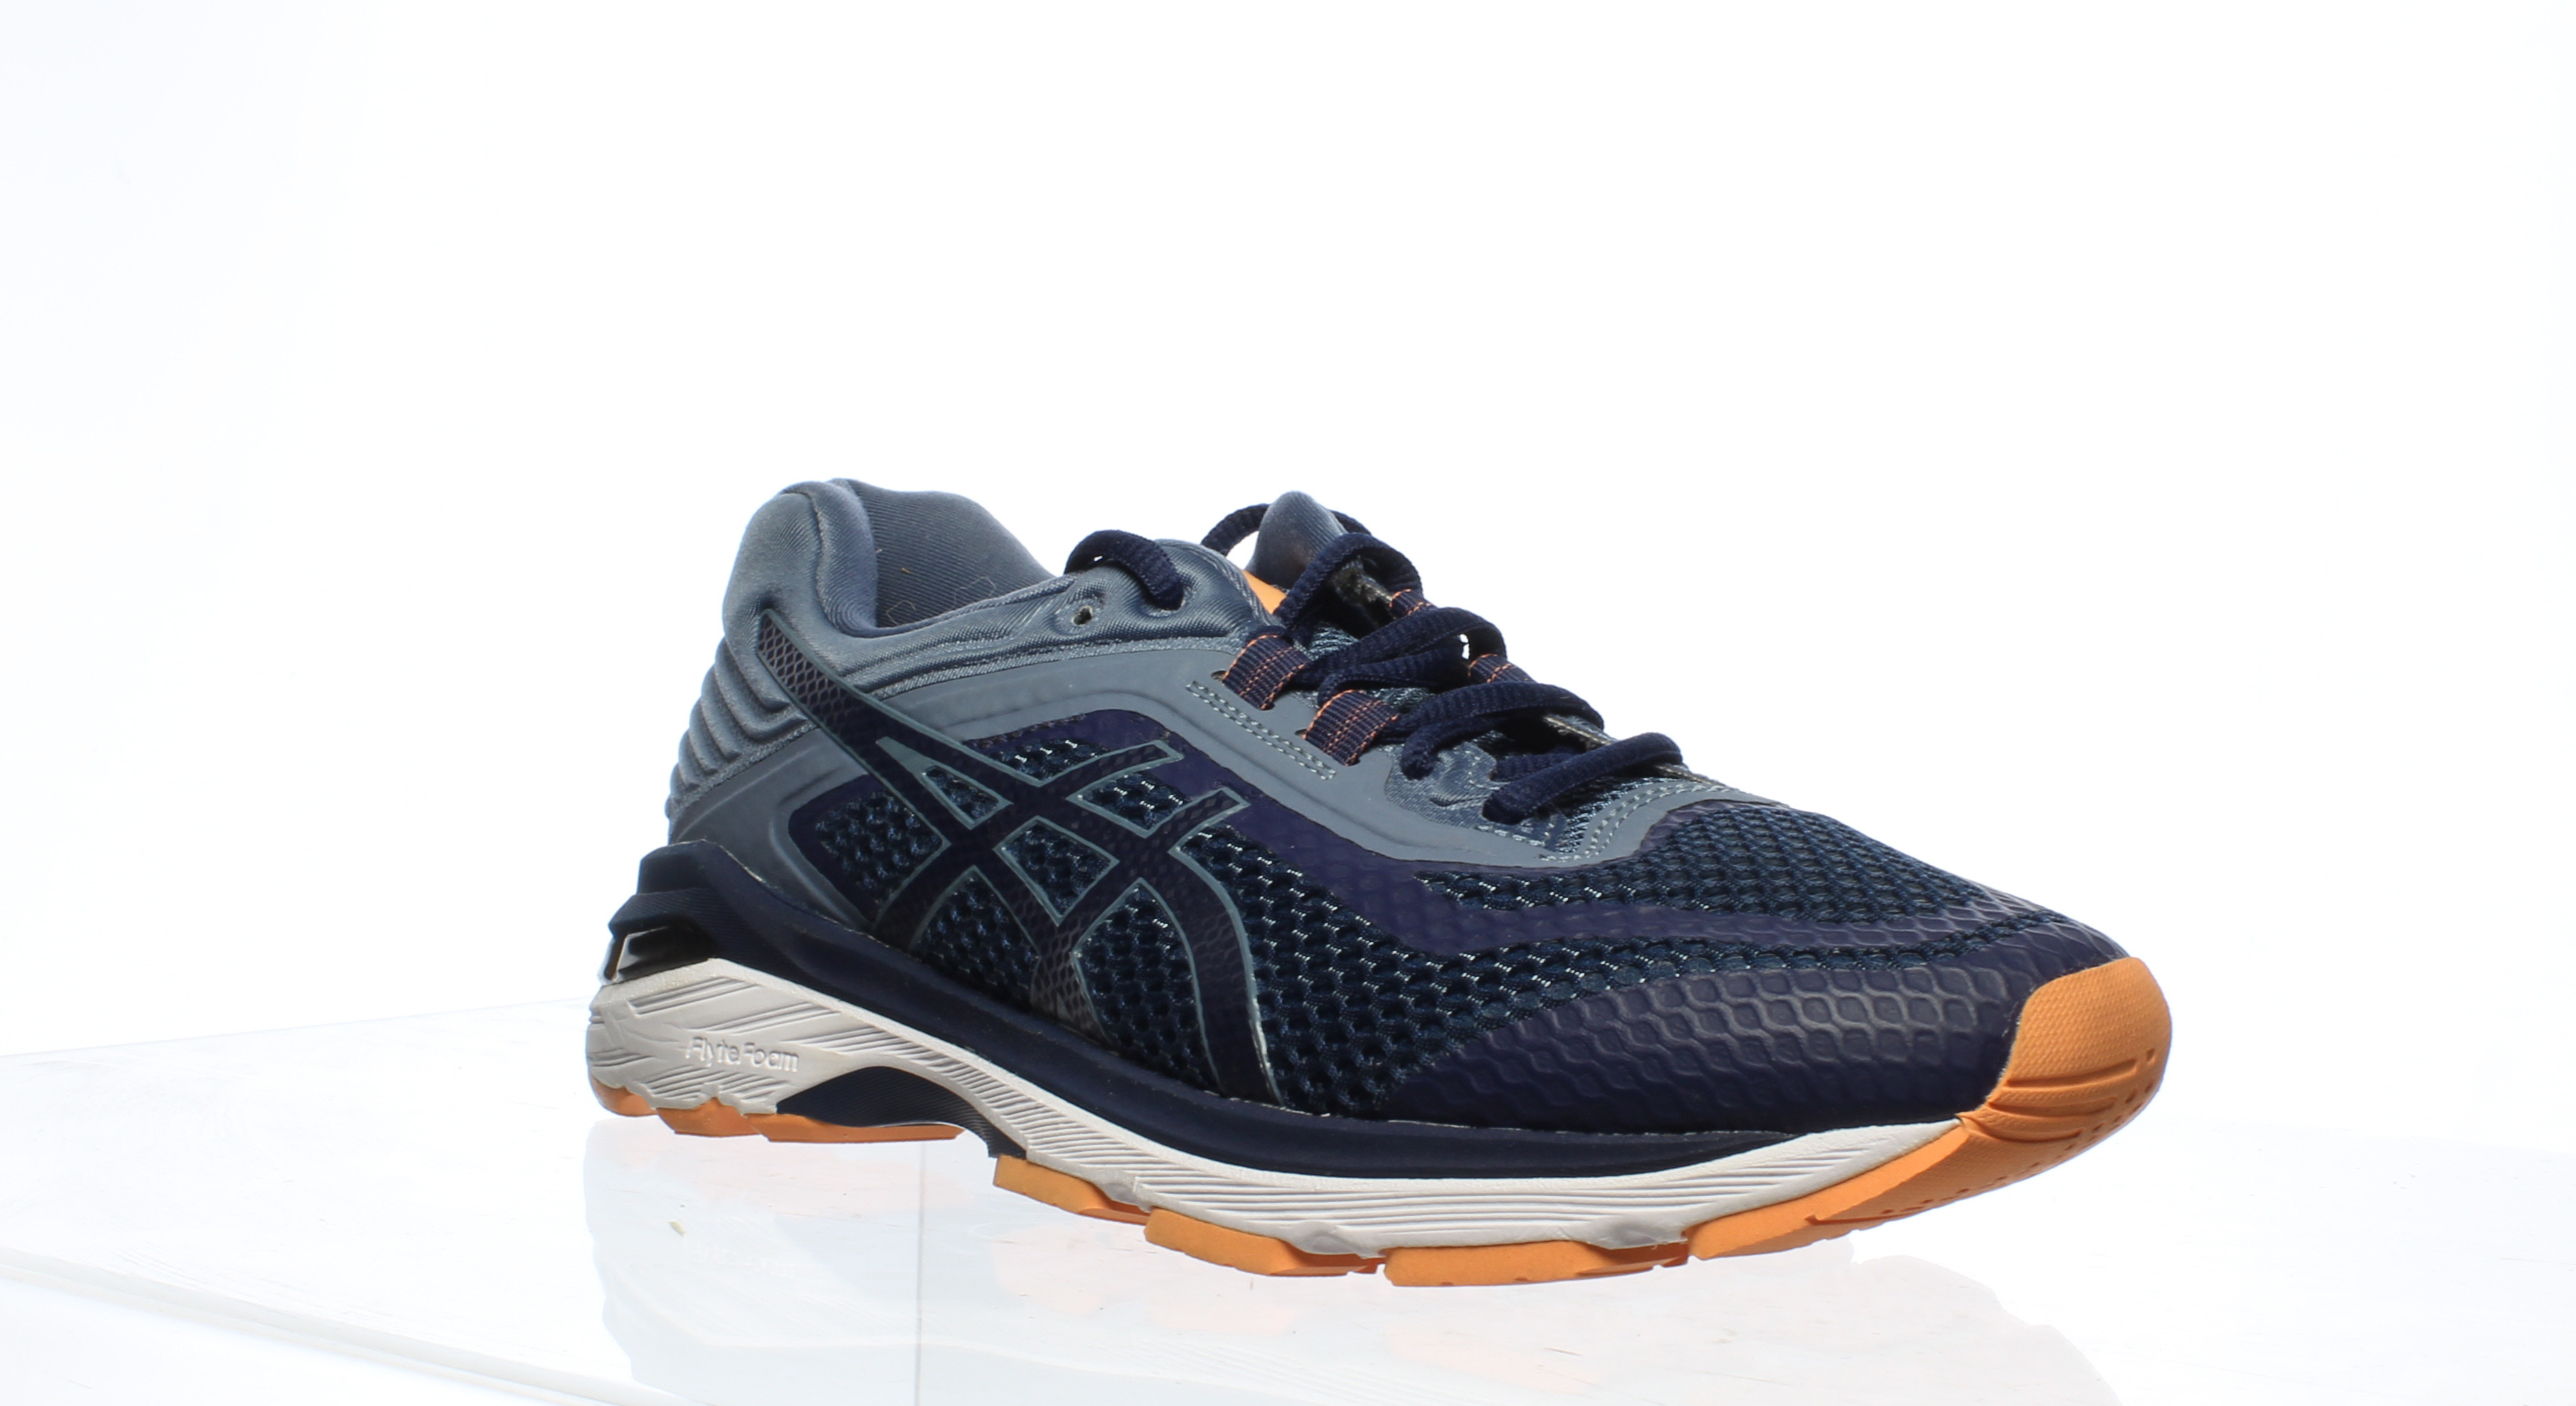 Details about ASICS Womens Gt 2000 6 Blue Running Shoes Size